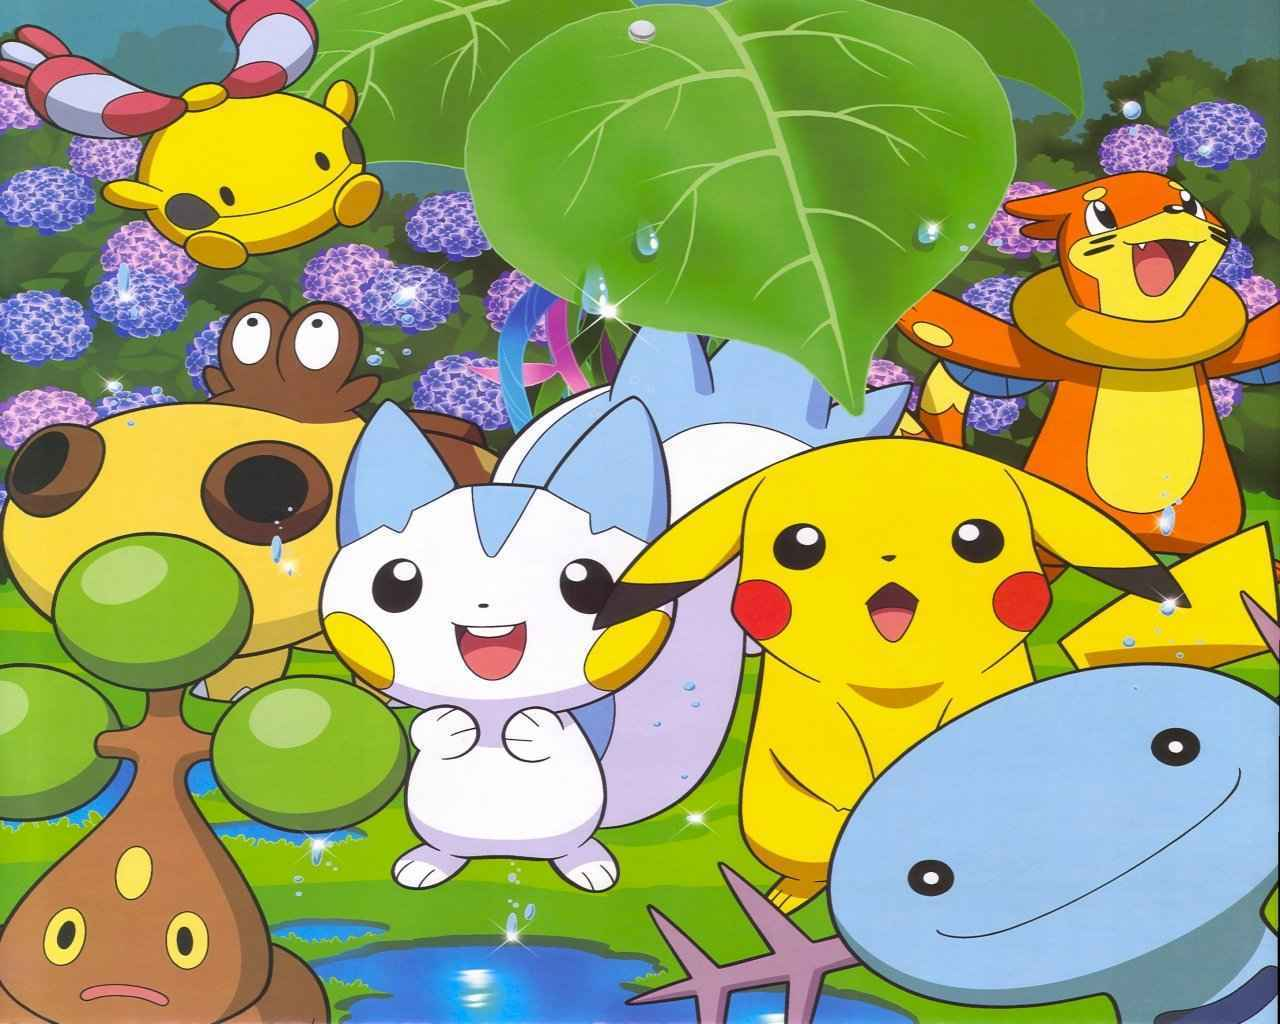 Cute Pikachu Hd Wallpapers Pokemon Pok 233 Mon Wallpaper 13598061 Fanpop